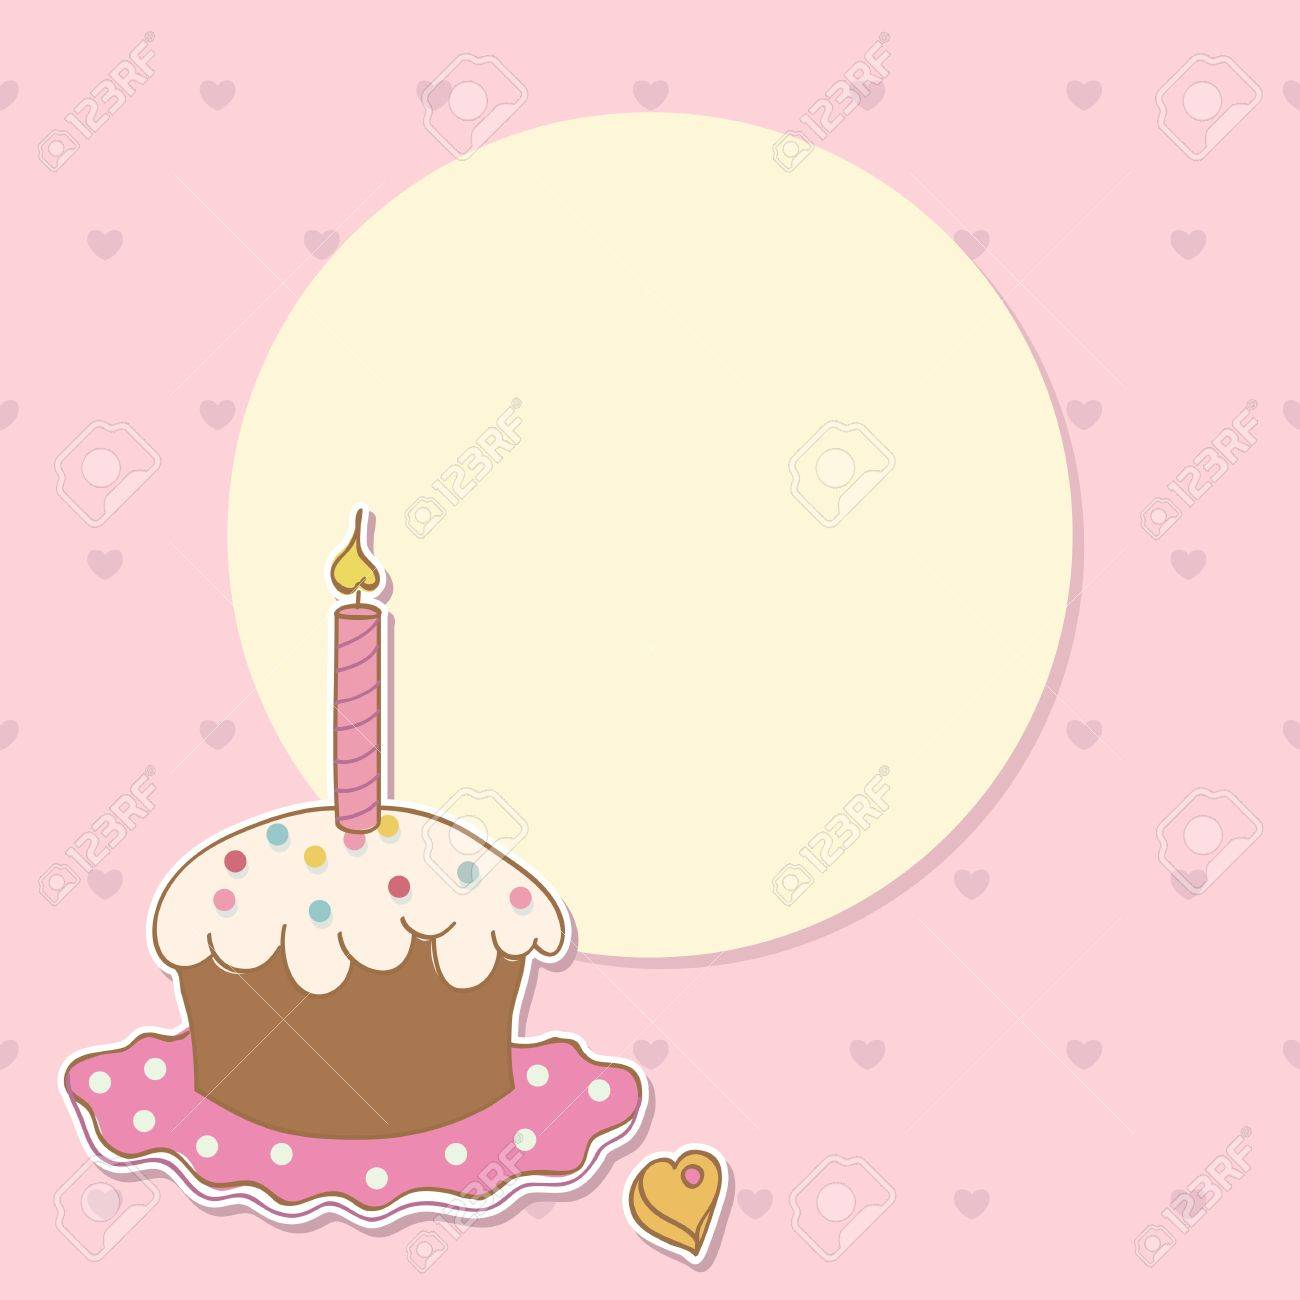 Invitation Card With Cake And Candle Birthday Background Royalty – Birthday Cards Backgrounds